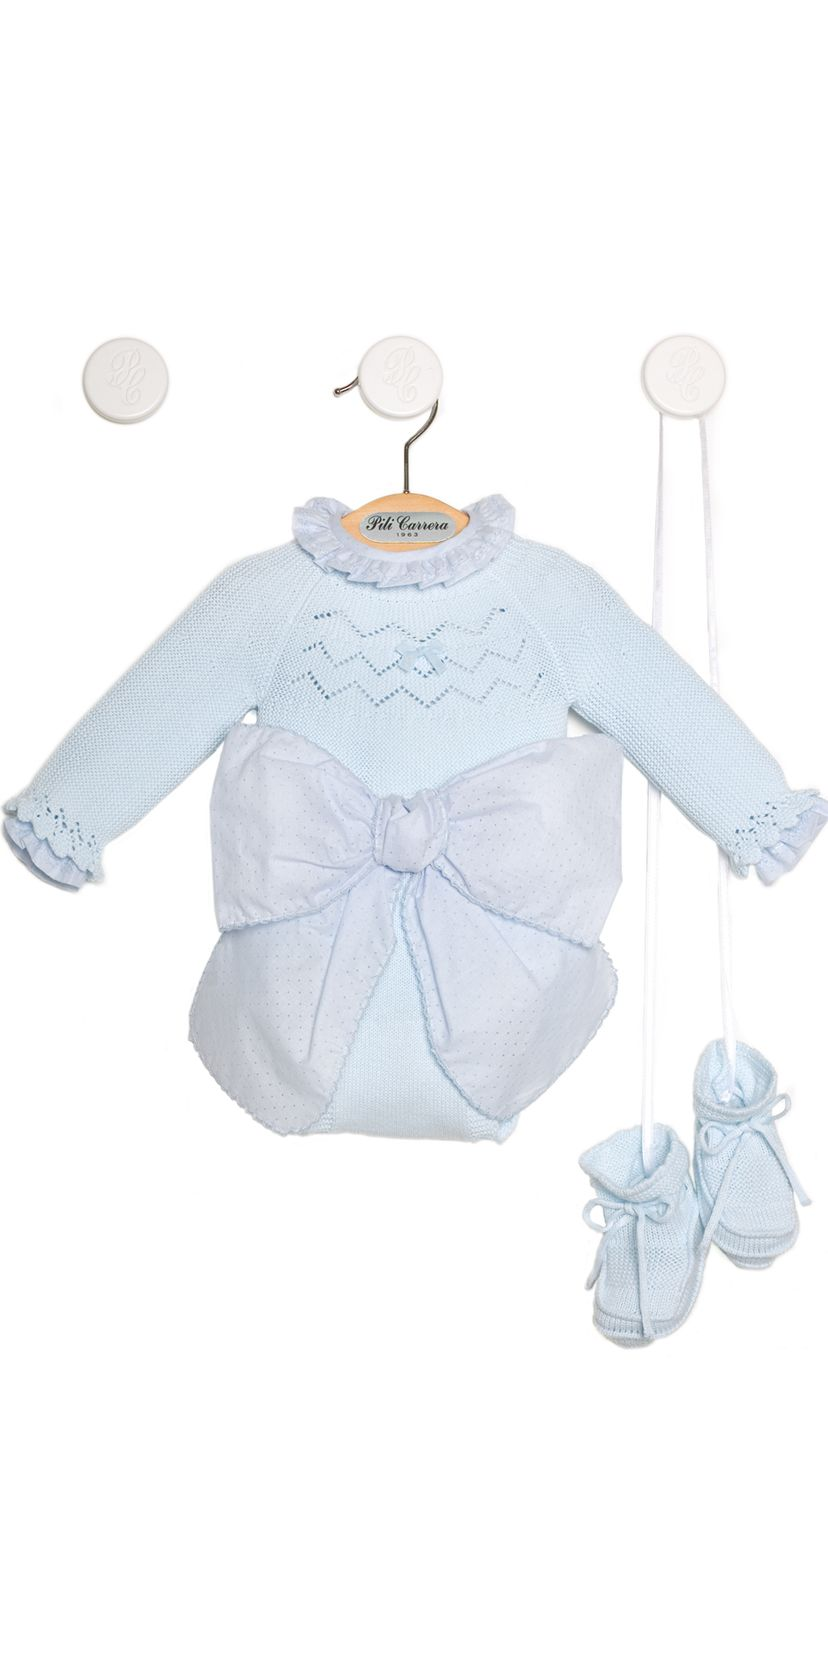 Pili Carrera Exquisite Baby Clothes Baby Pinterest Carrera